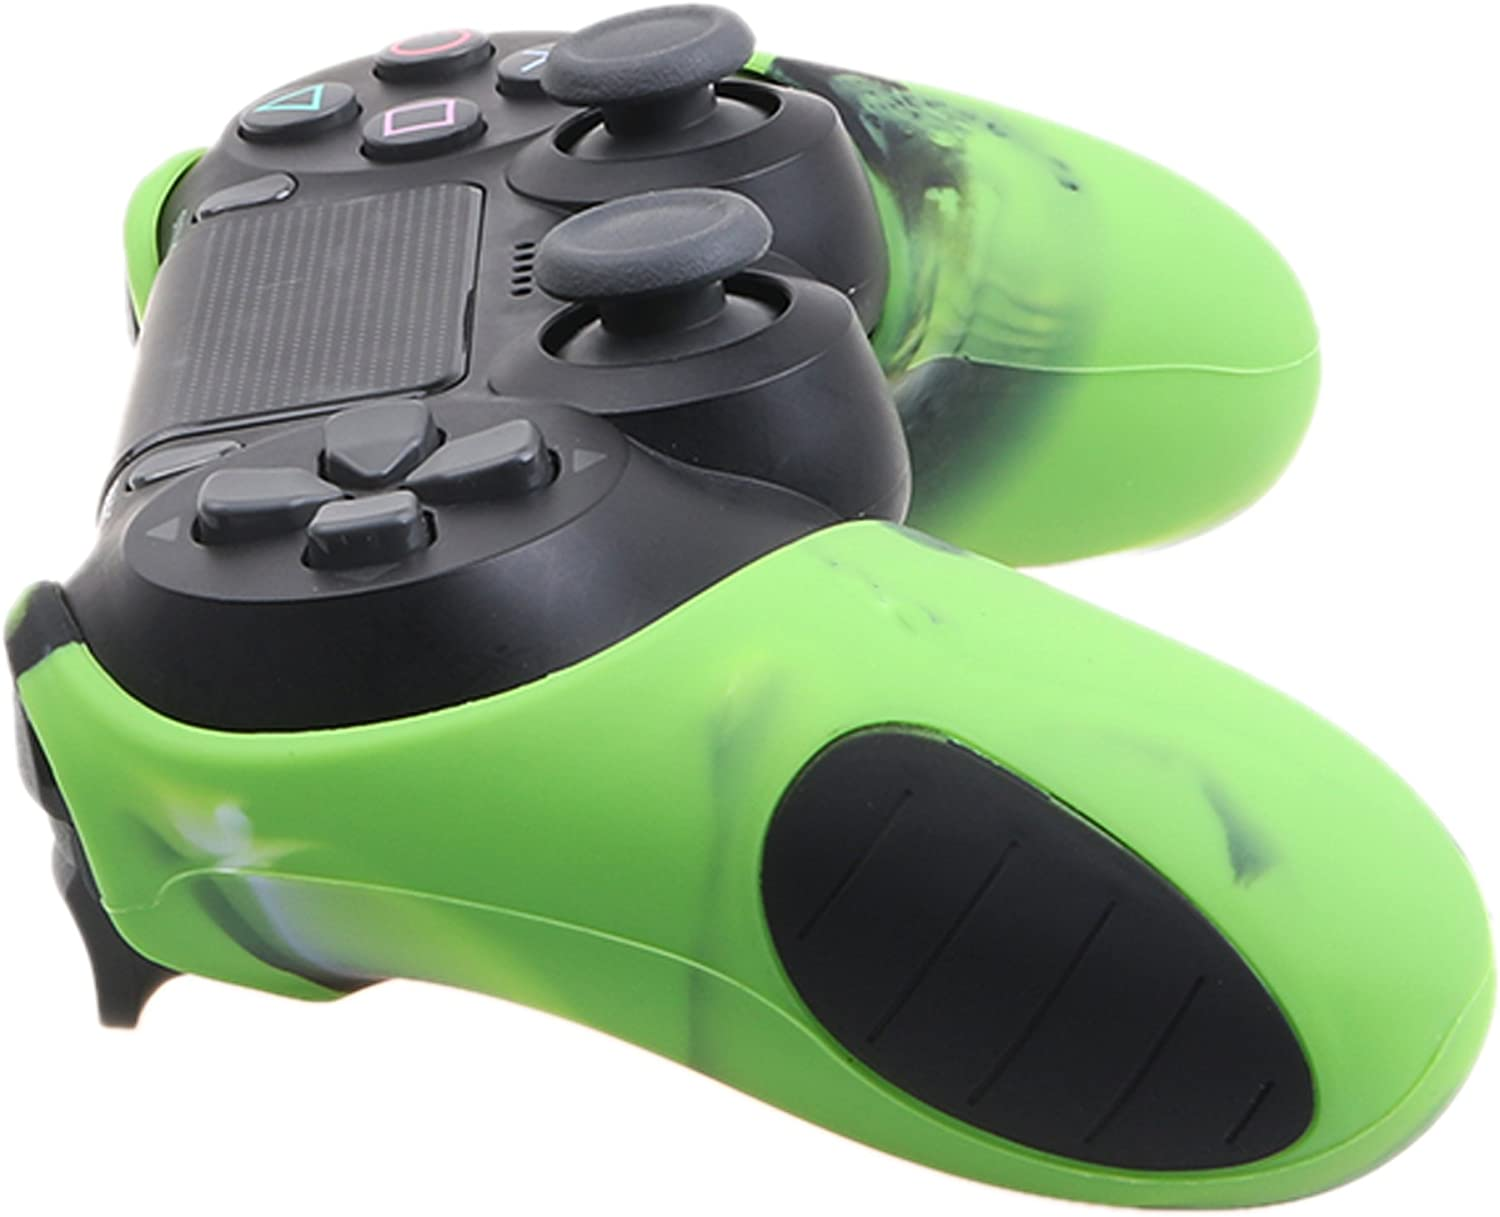 blue+green With Pro thumb grips x 8 YoRHa Studded Silicone Cover Skin Case for Sony PS4//slim//Pro Dualshock 4 controller x 2